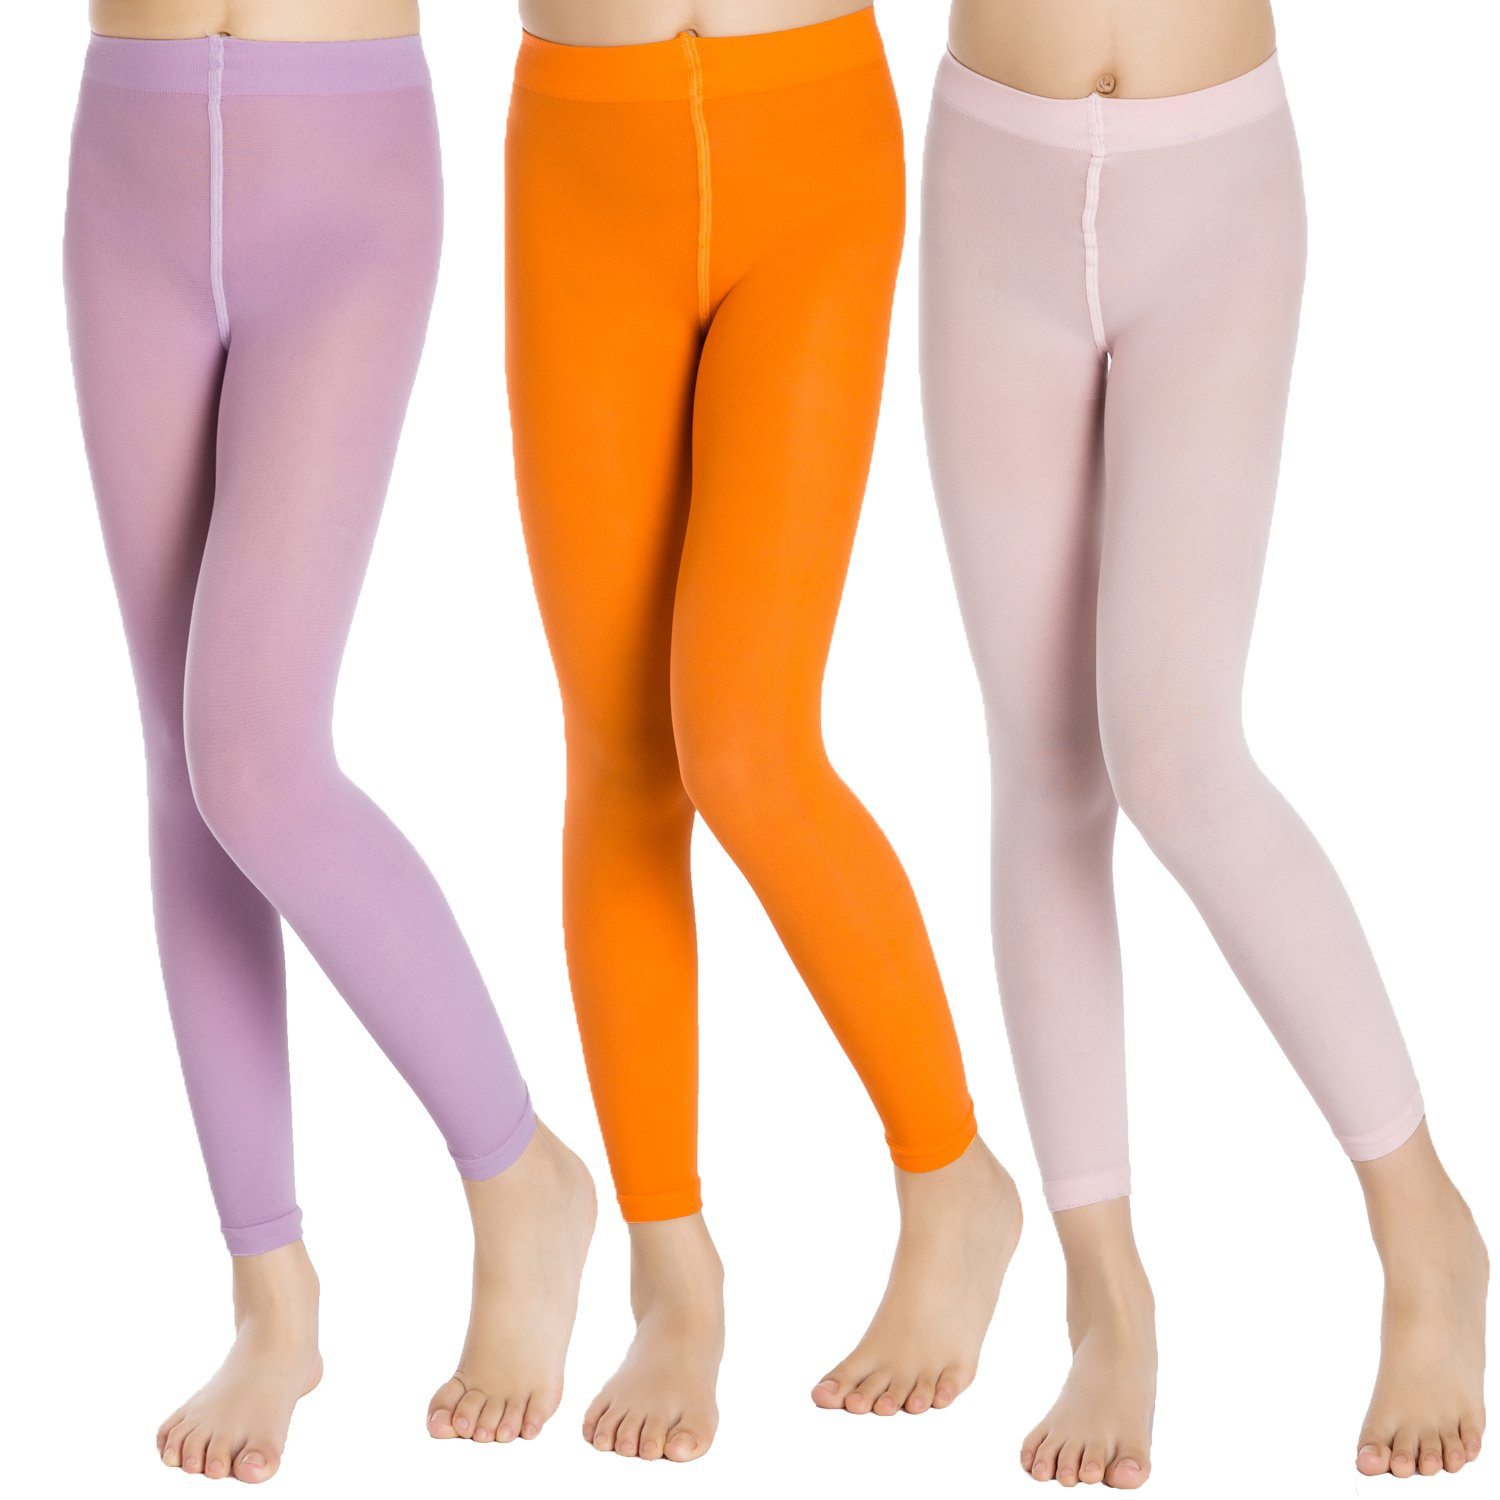 Aaronano School Girl's 3 Pairs Footless Ballet Dance Tights Age(2-16)